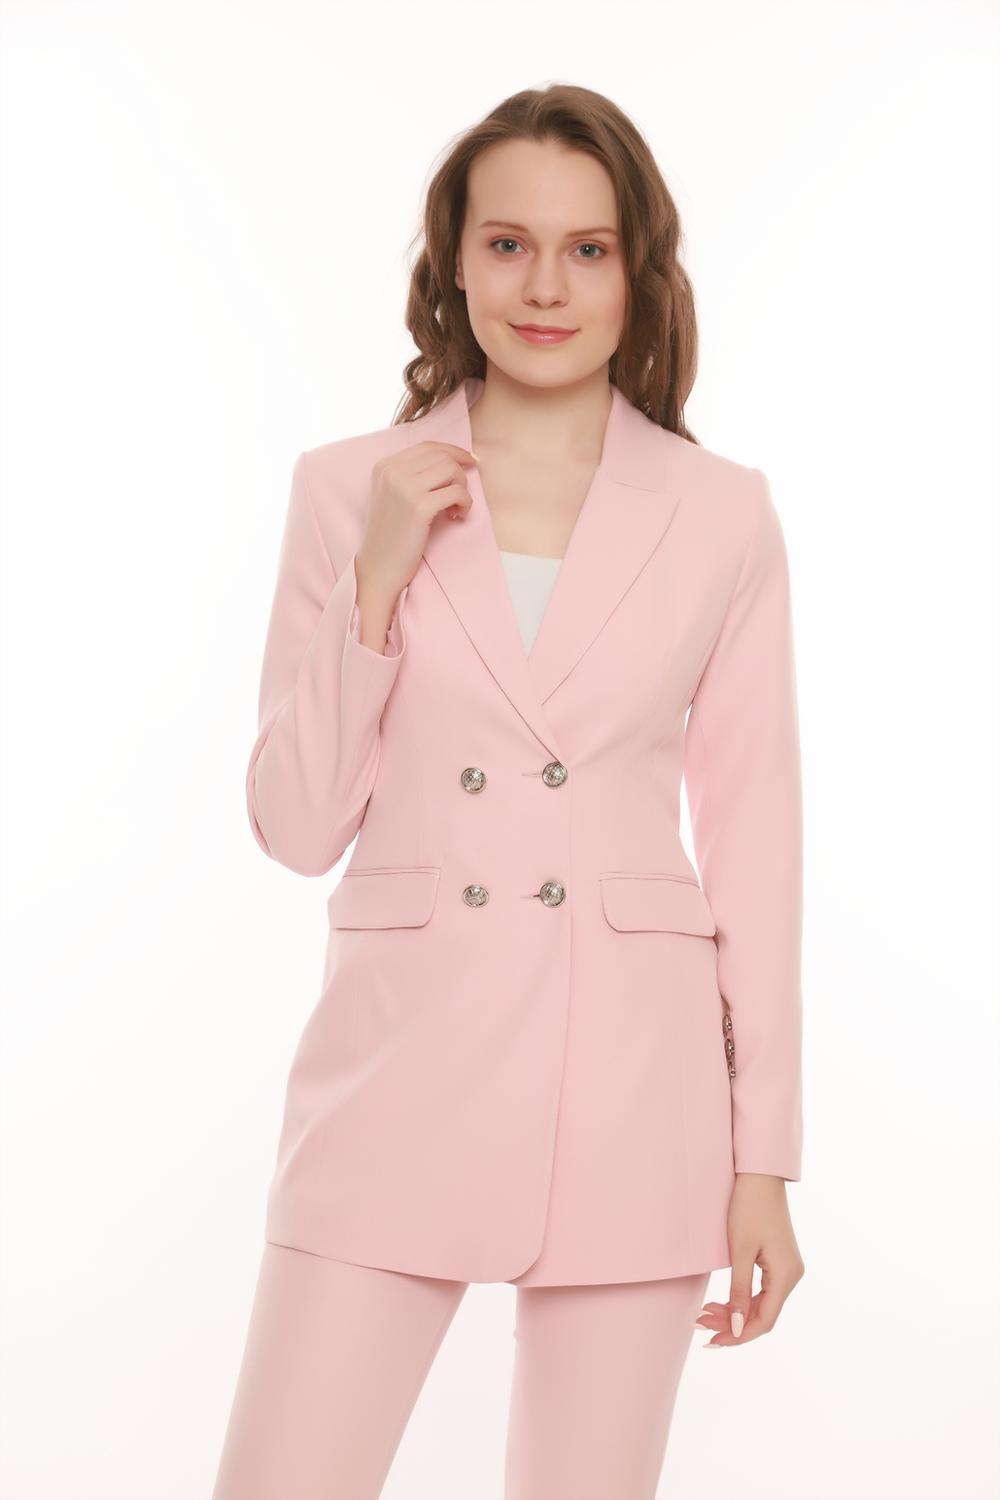 2020 New Spring Summer Blazer Long Jacket Collection Classic Office Outdoor Street Fit Mold Dry Long Jacket